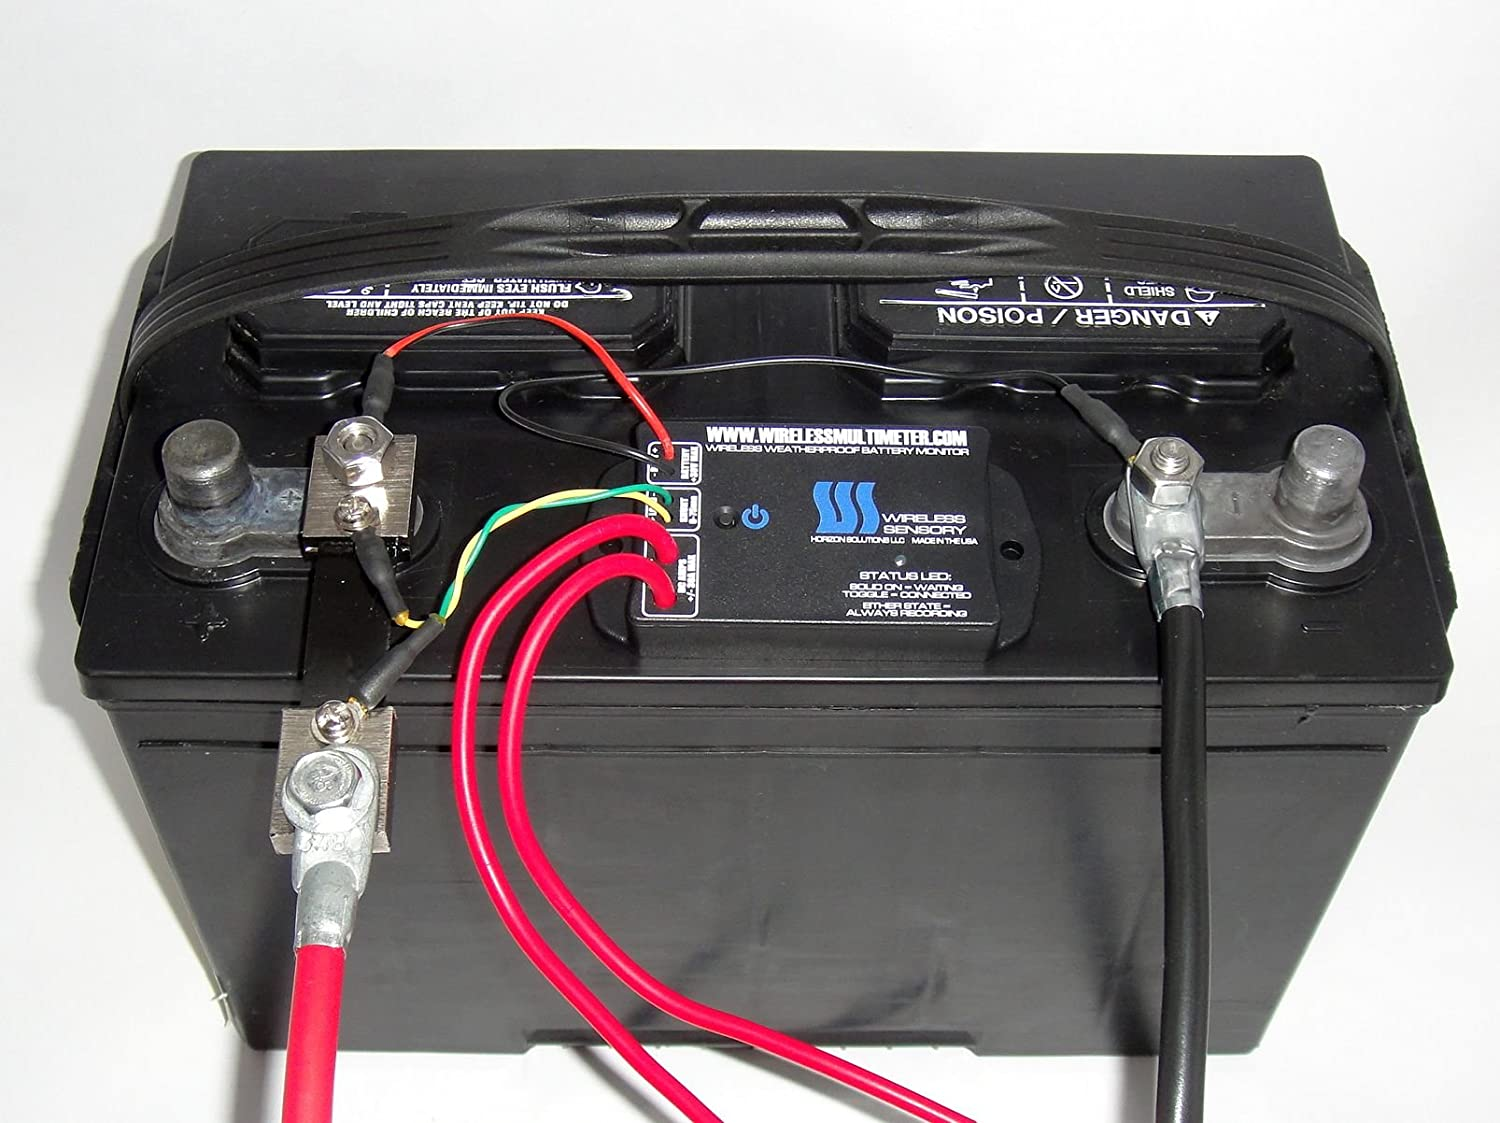 Rv open roads forum tech issues how to monitor battery state wireless bluetooth battery monitor mounts at battery monitor with your smart phone or tablet greentooth Images